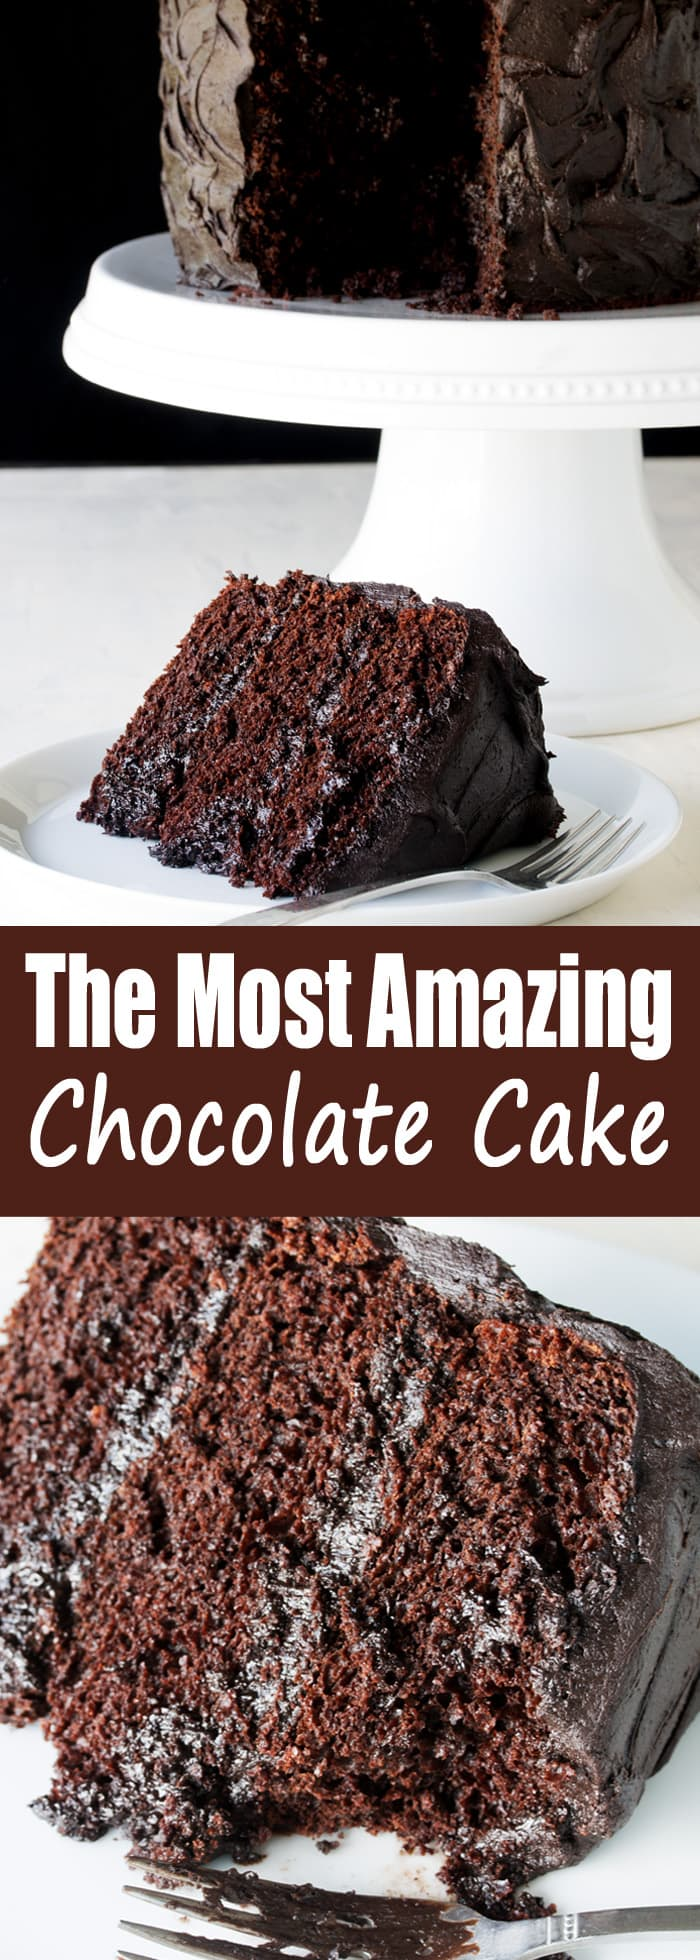 The Most Amazing Chocolate Cake Recipe - thestayathomechef.com